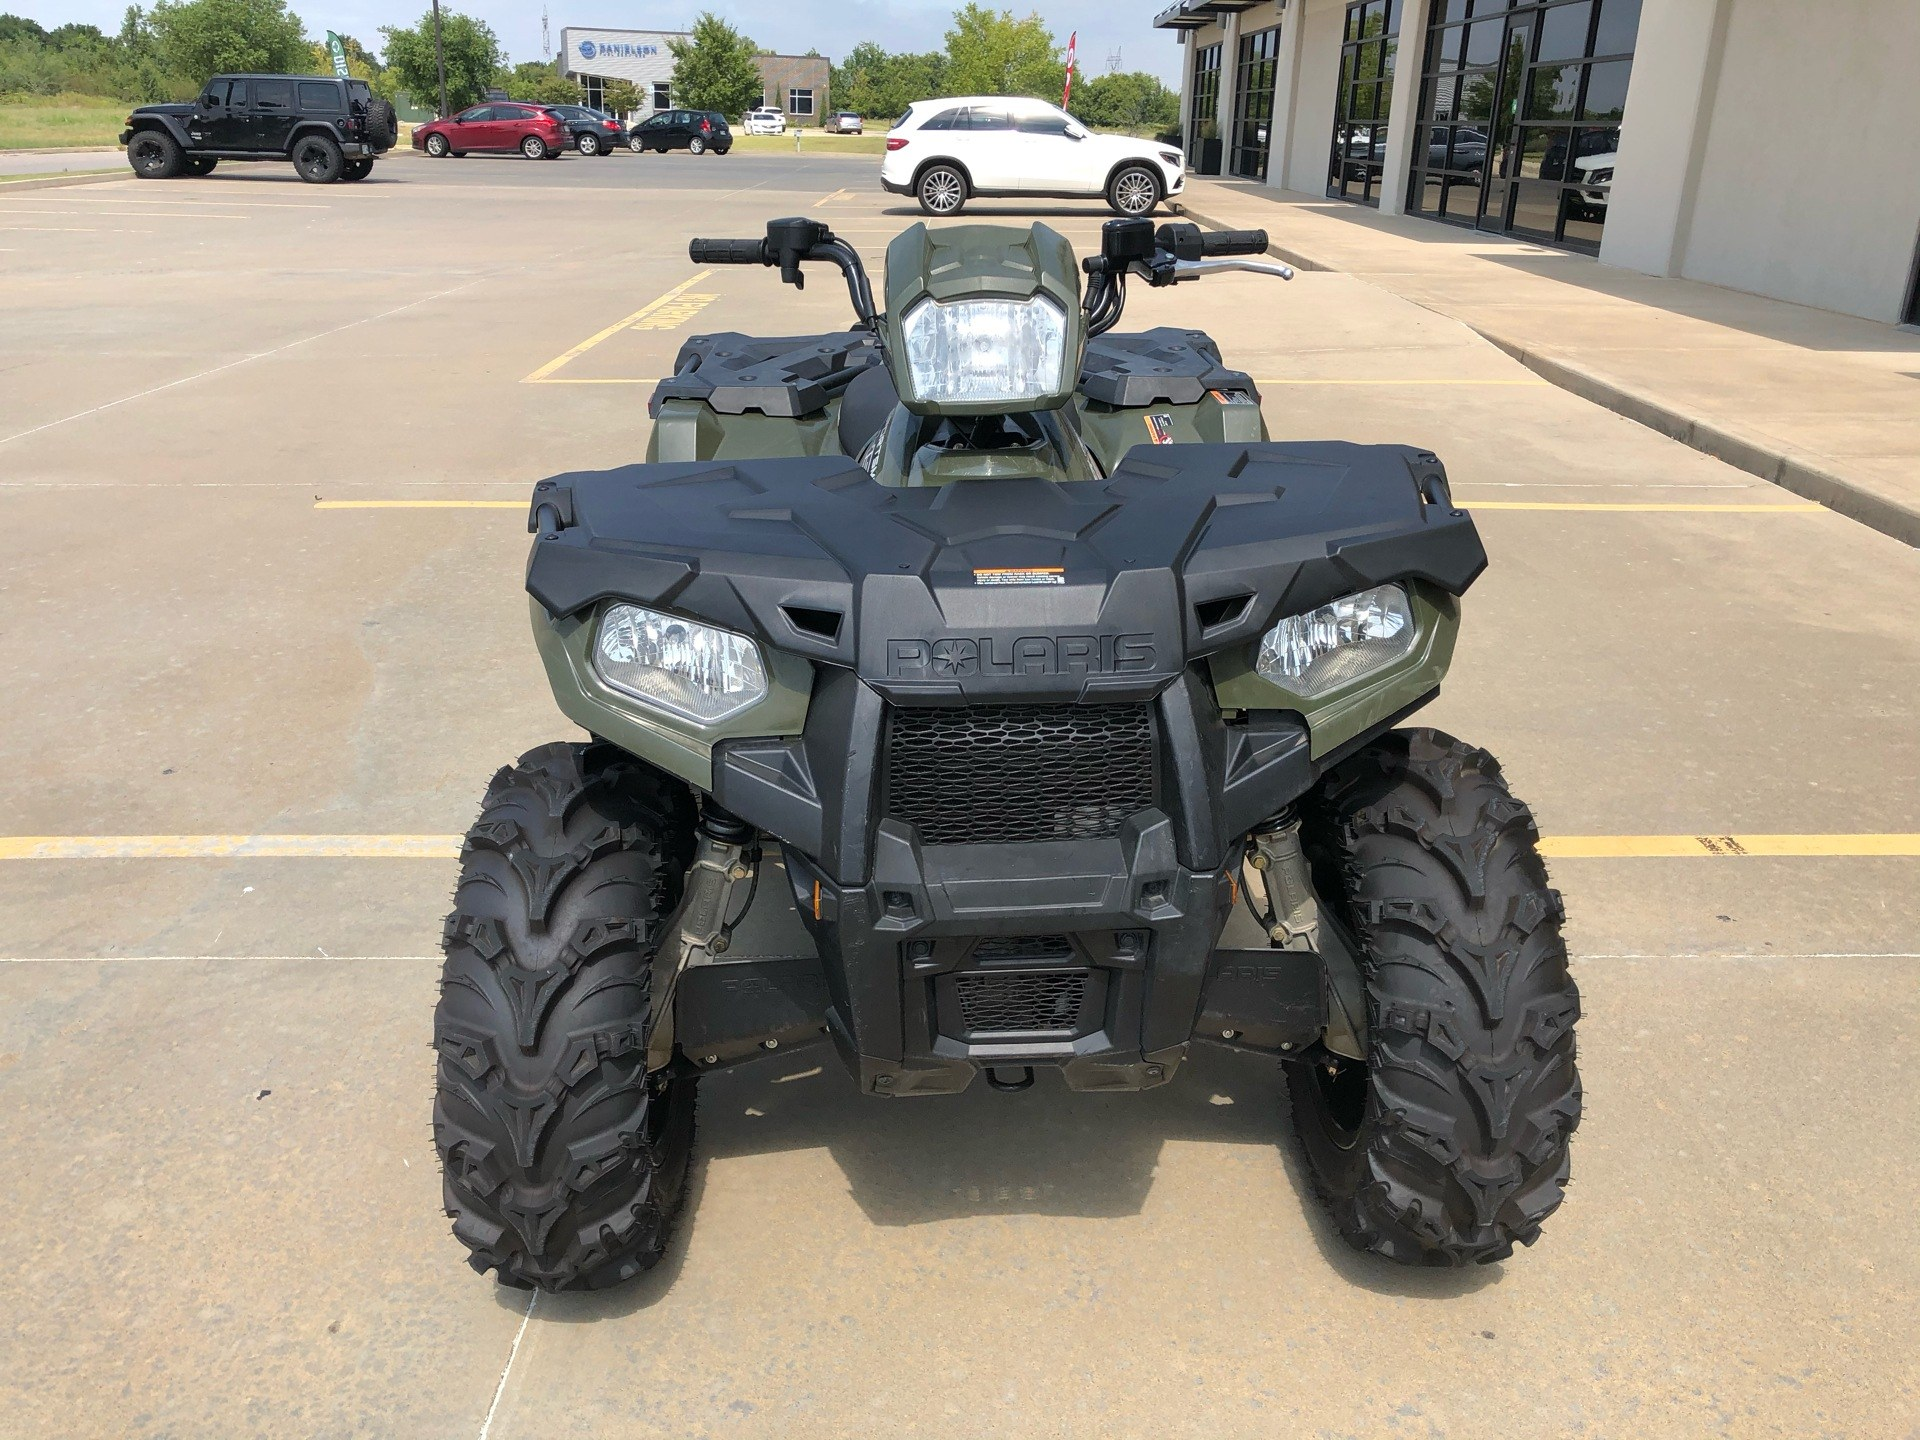 2019 Polaris Sportsman 450 H.O. in Norman, Oklahoma - Photo 3